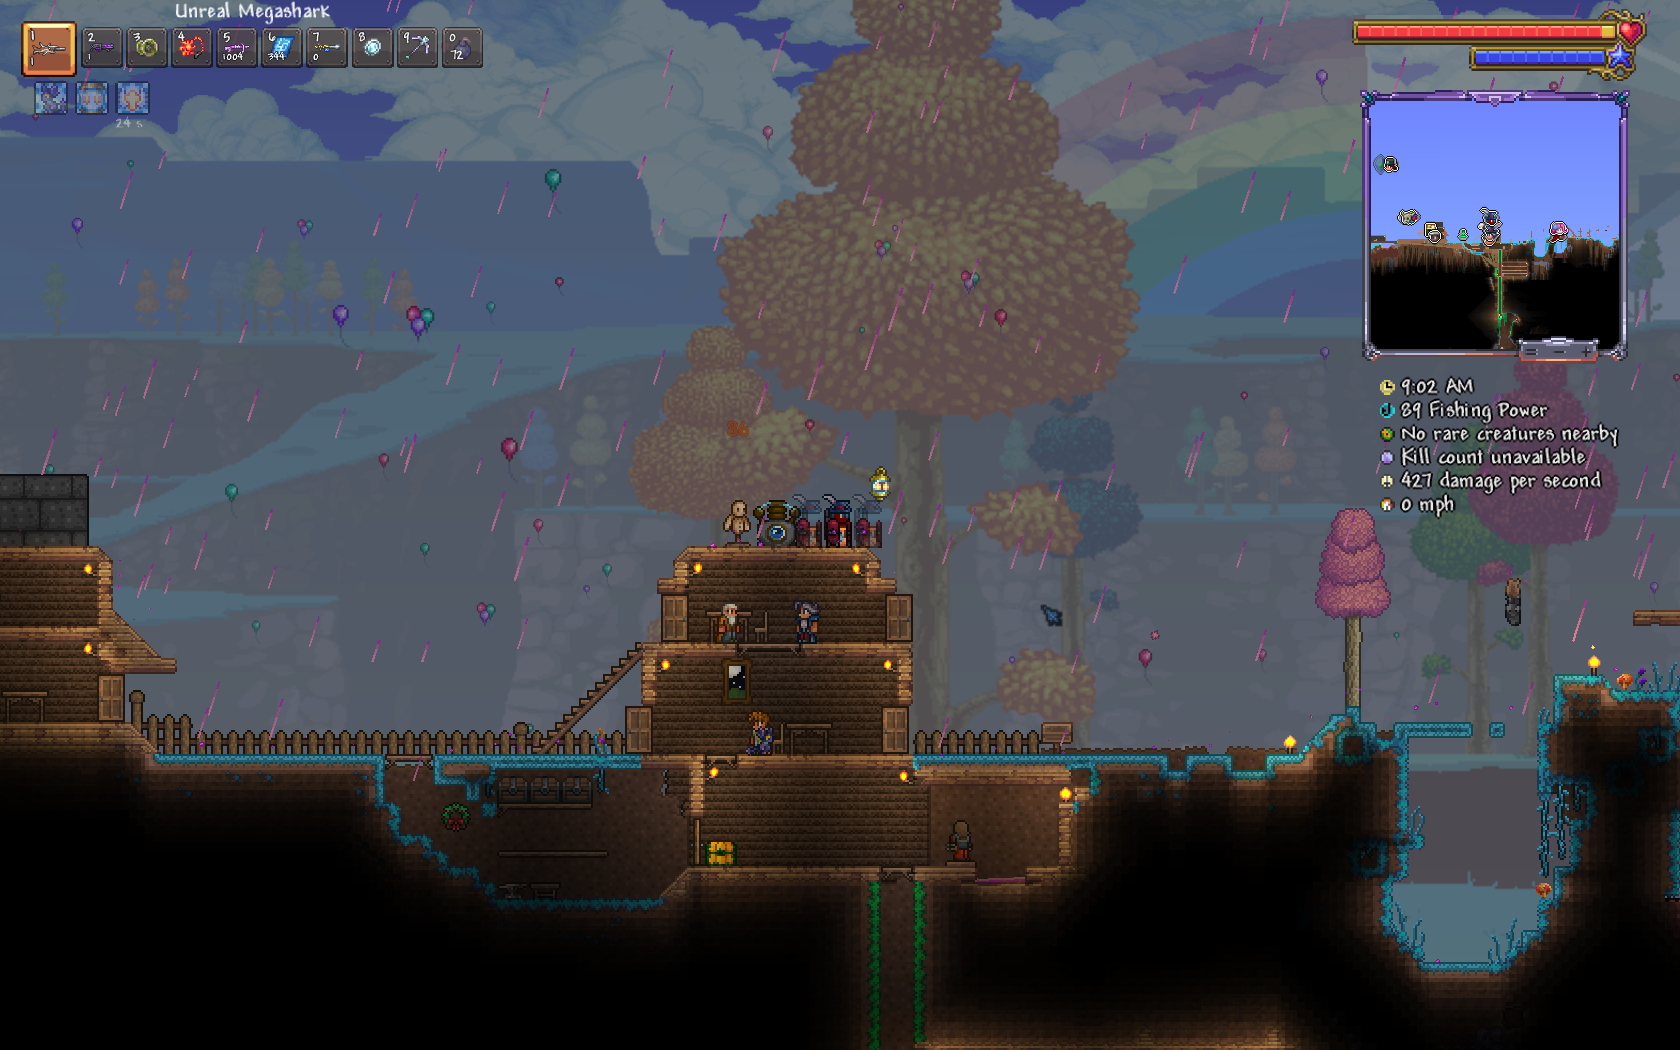 Terraria_ Sand is Overpowered 9_15_2021 2_43_51 PM.png